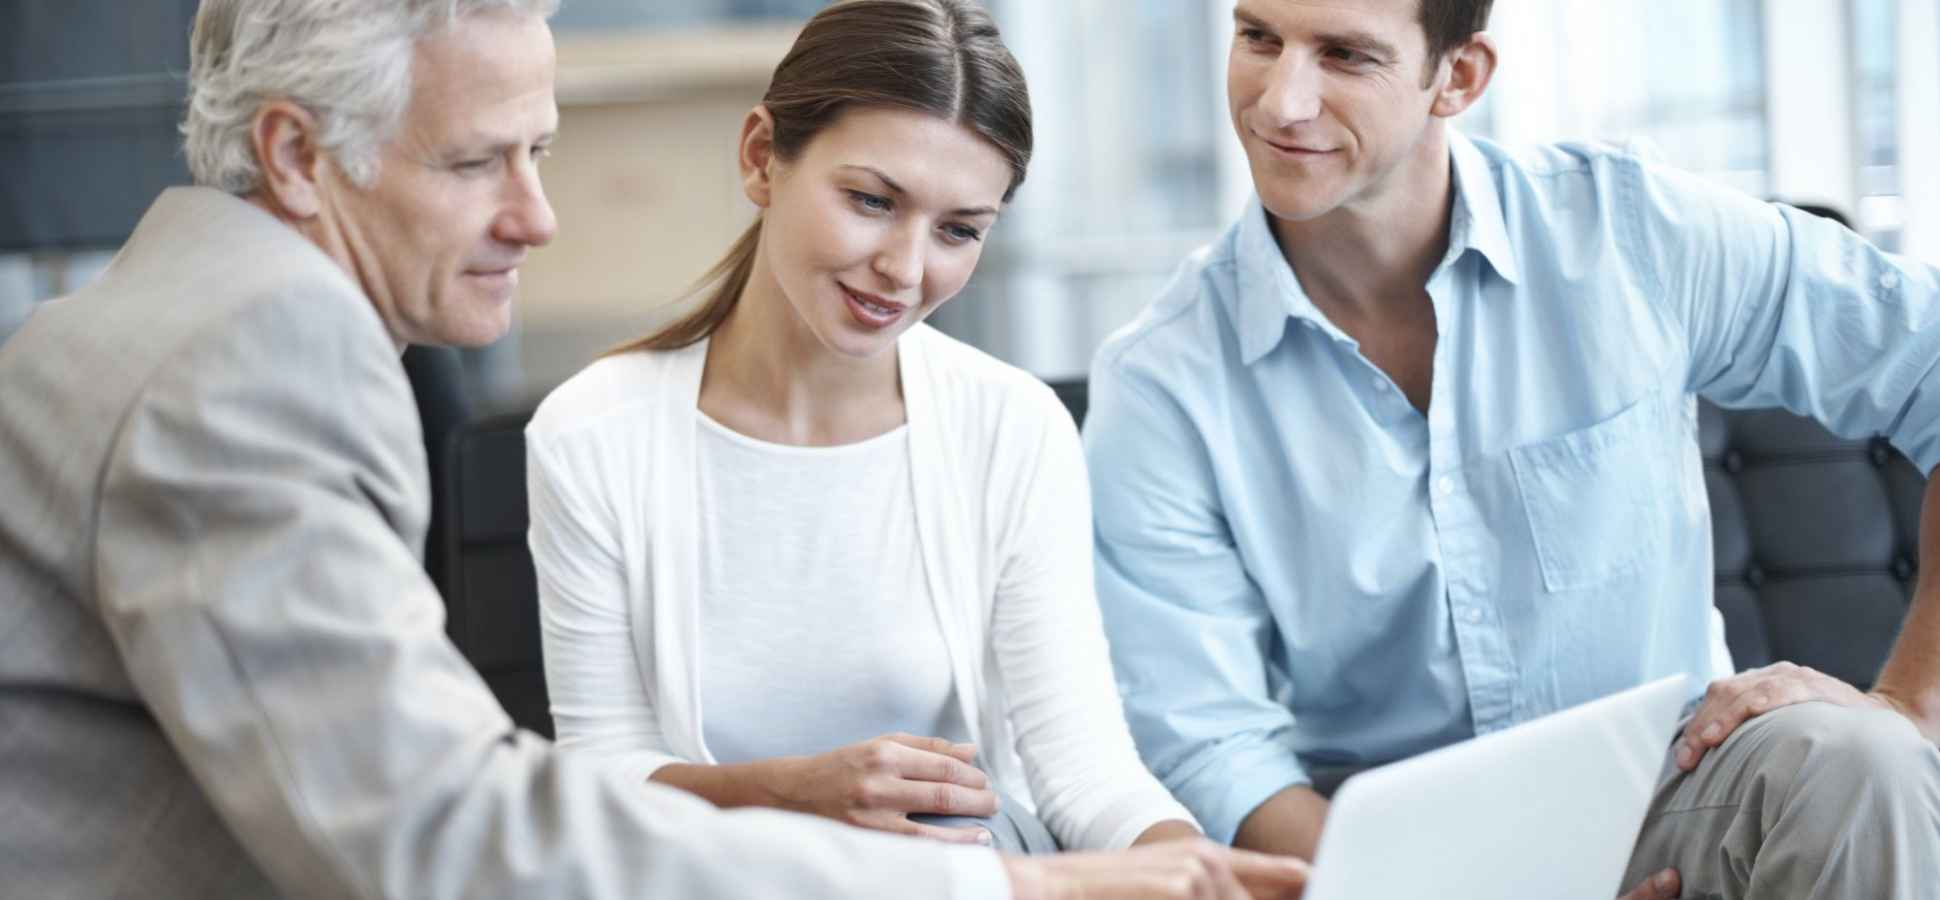 7 Important Qualities Your Next Mentor Needs to Have